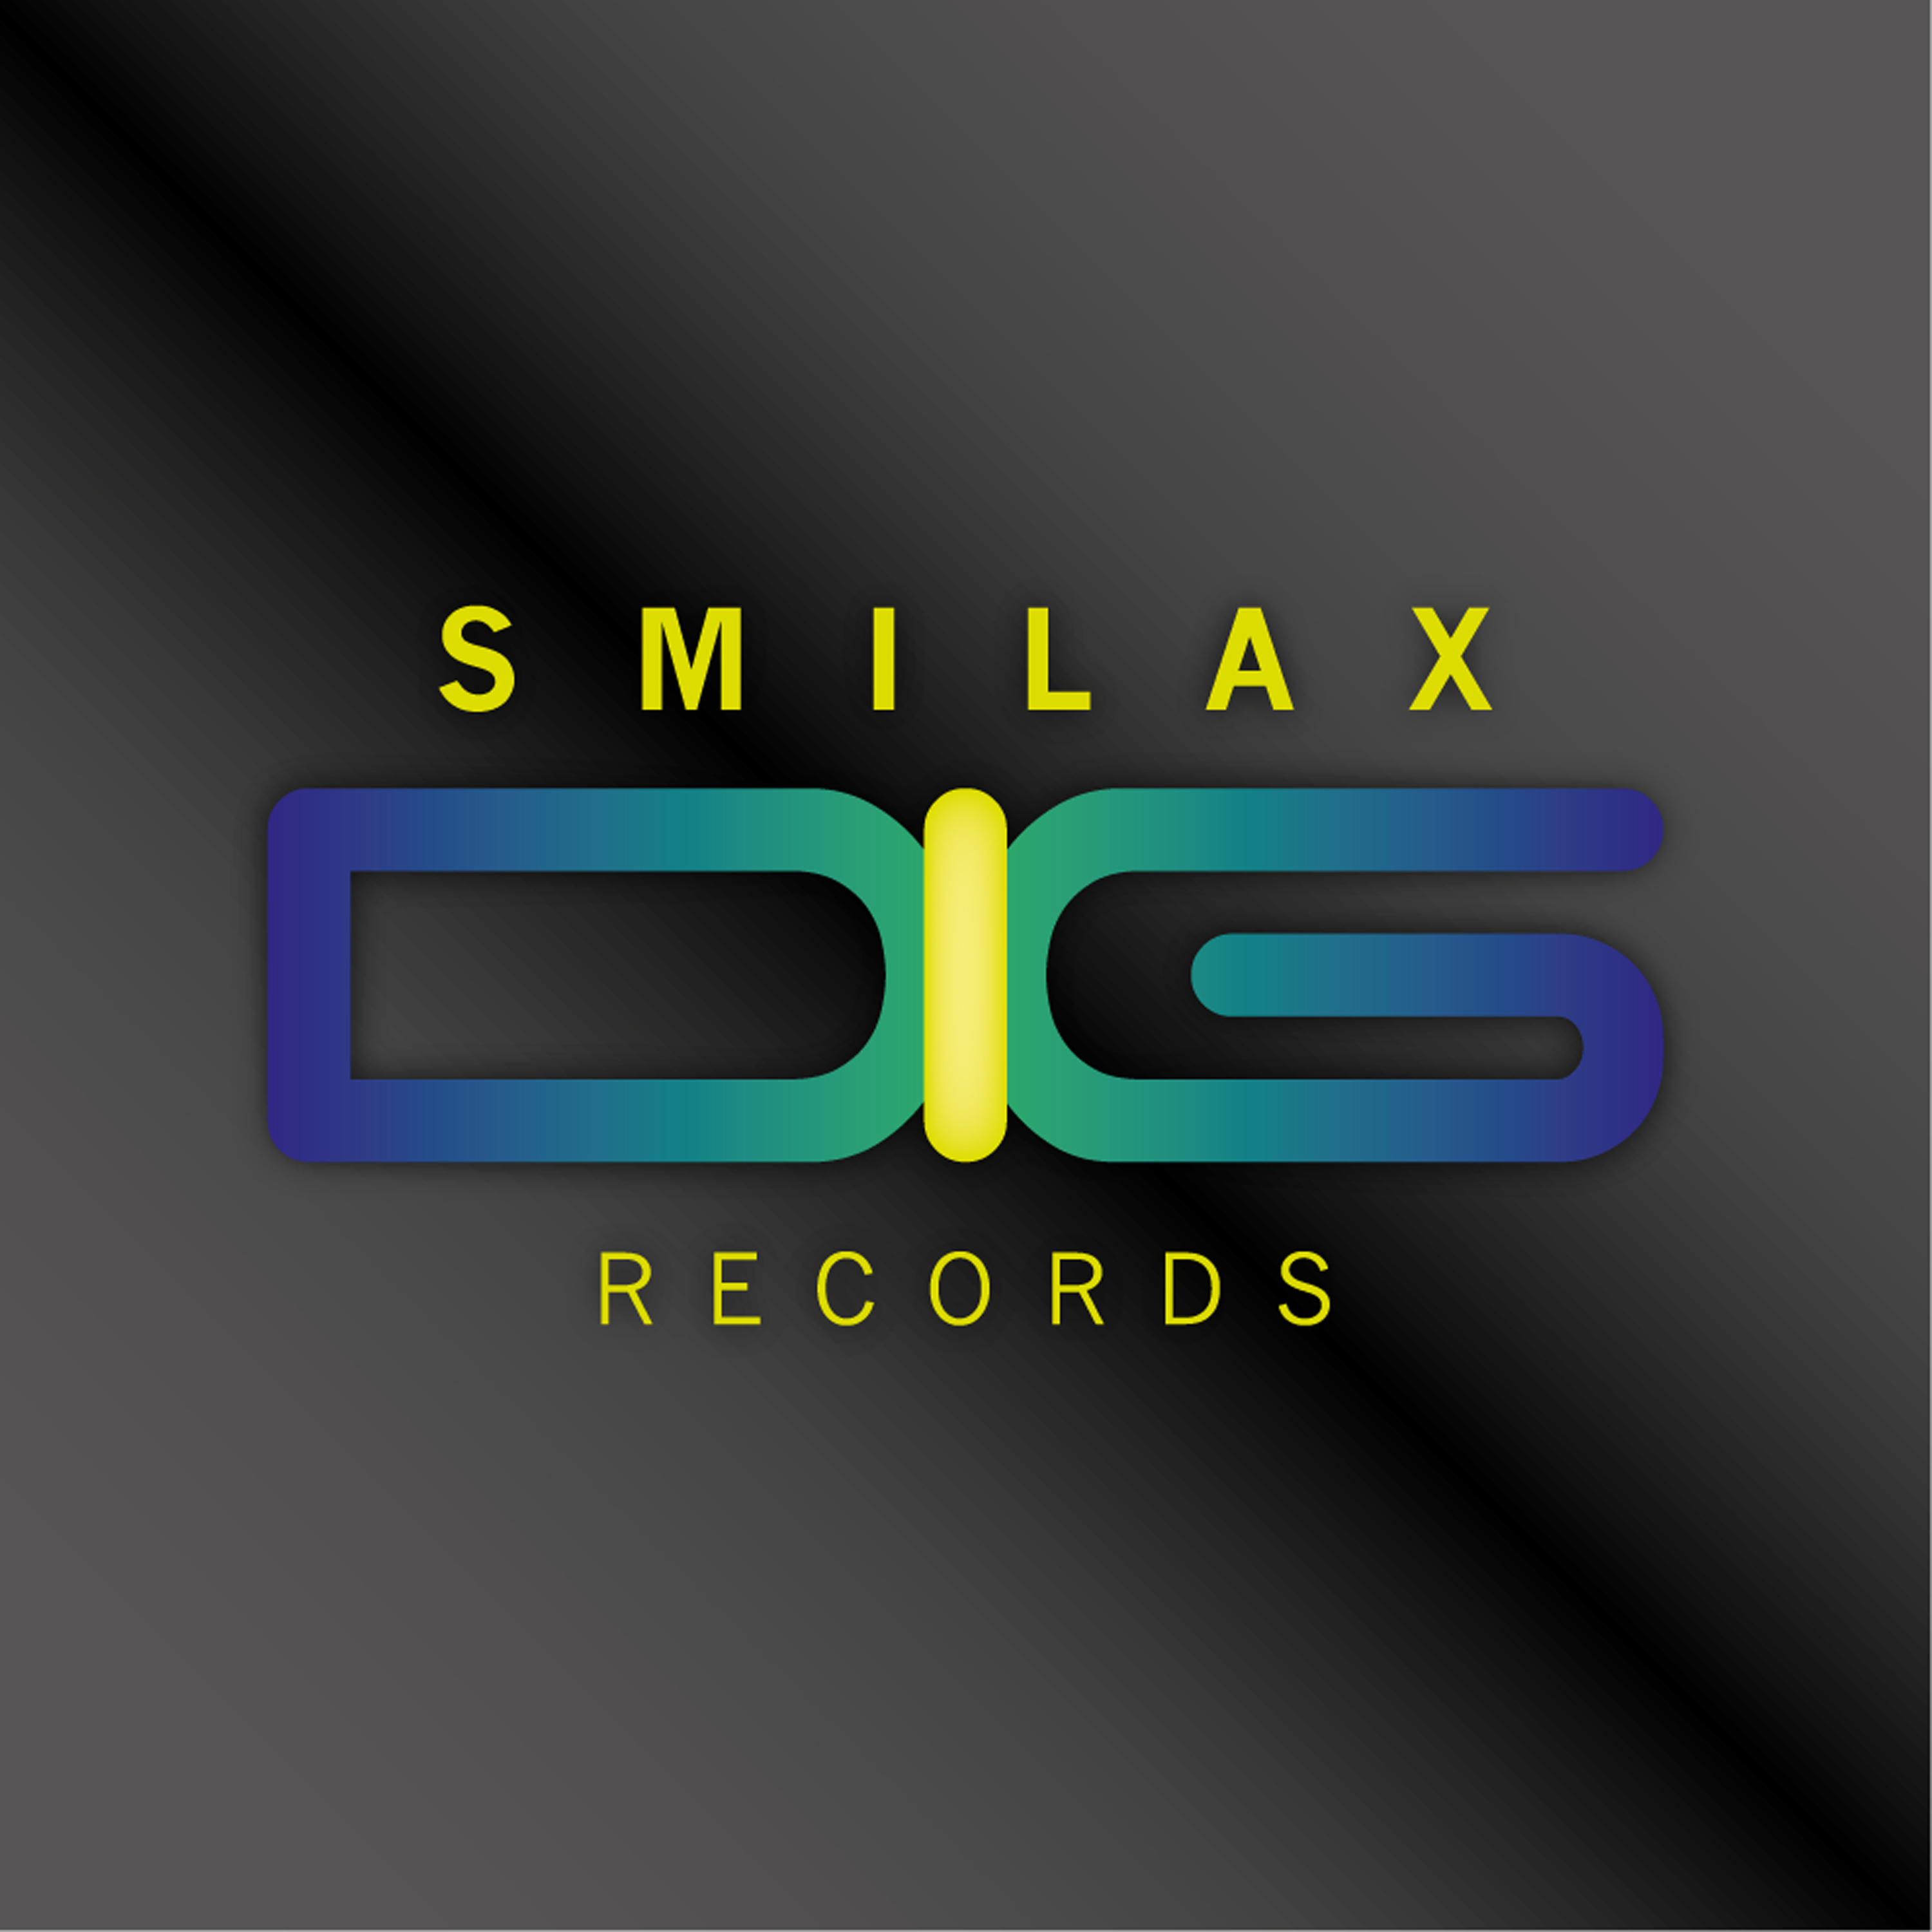 Smilax Dig Records